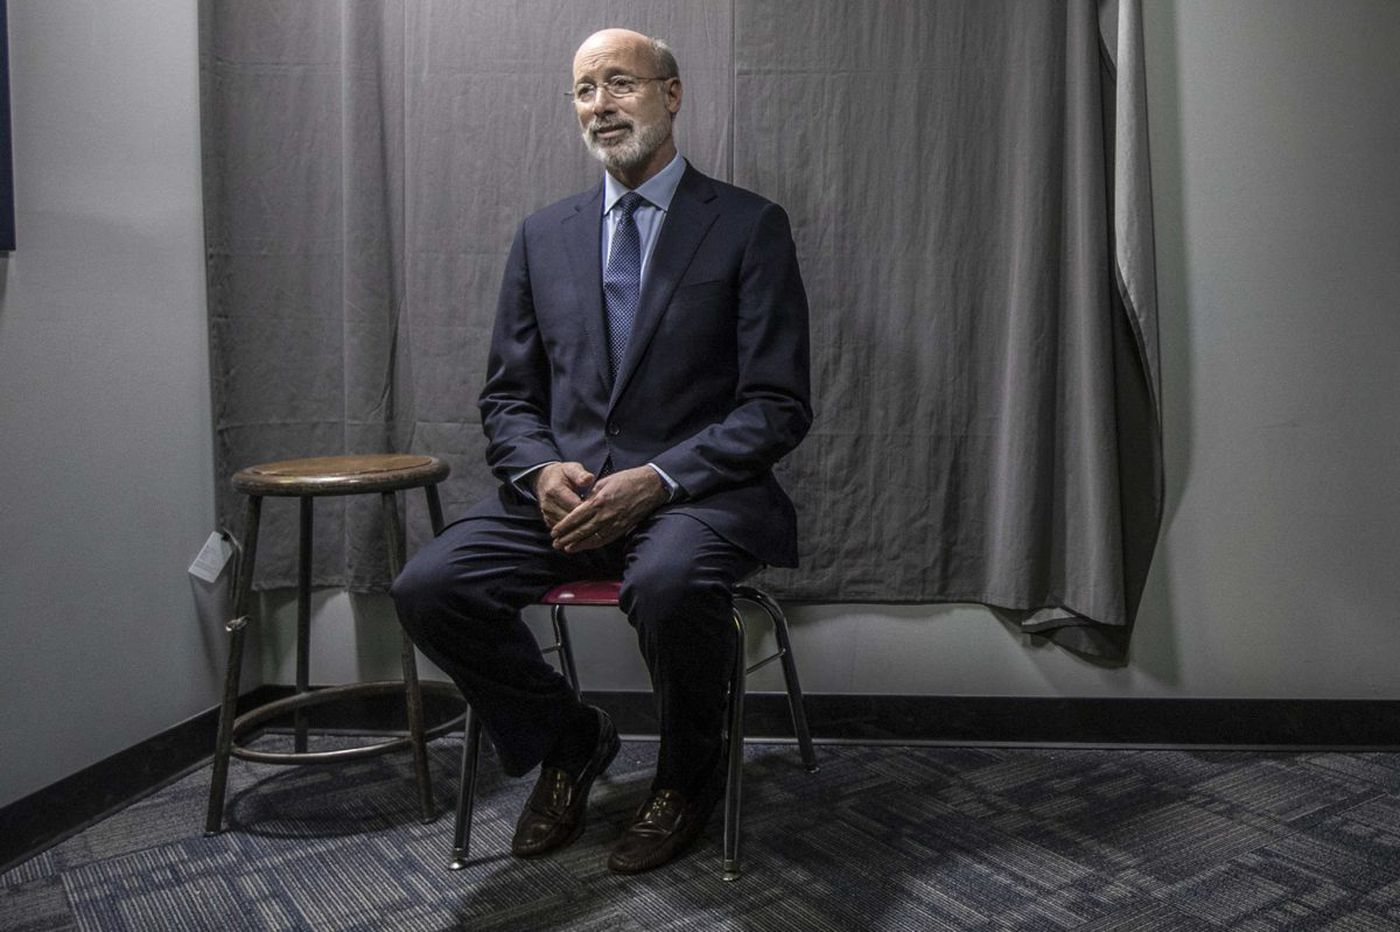 Gov. Wolf calls for ban on taxpayer-funded settlements in harassment cases